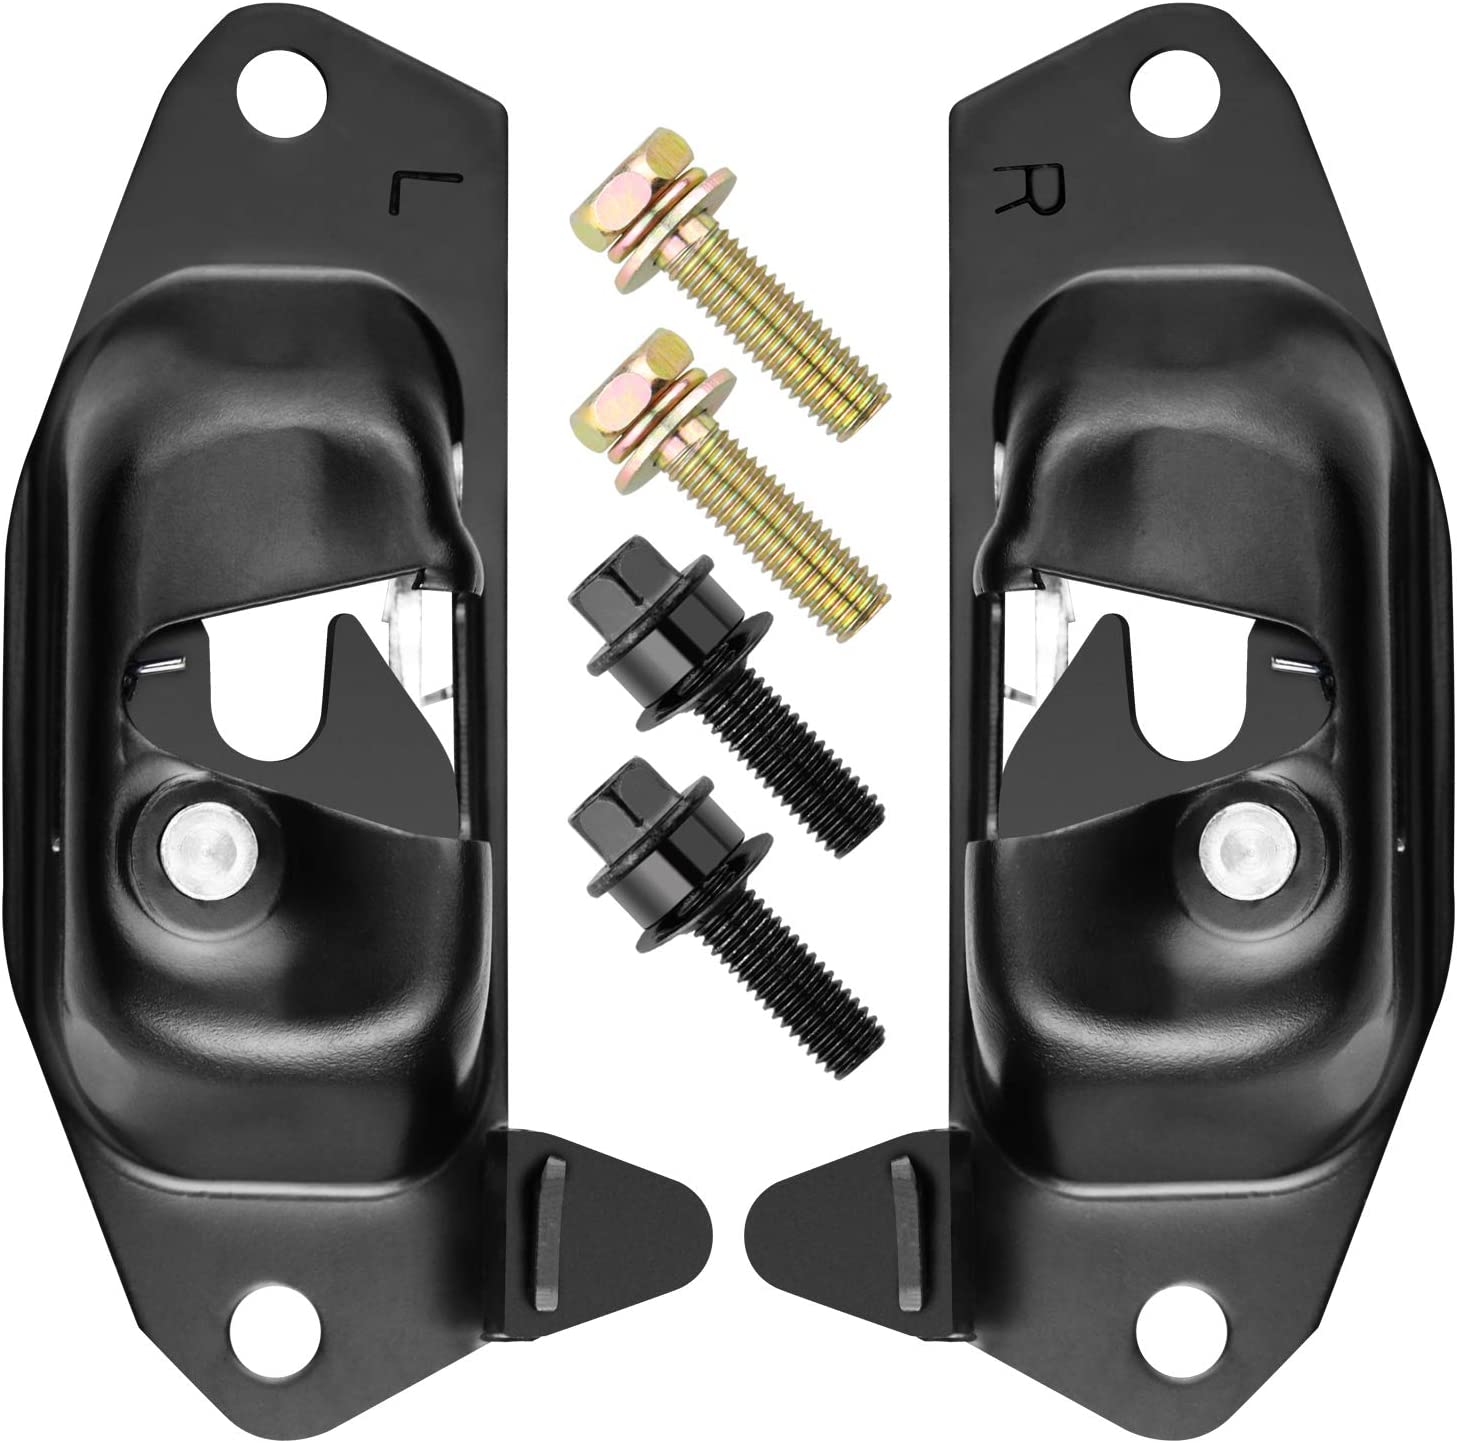 99-06 Chevy Silverado and GMC Sierra Replacement Tailgate Latch and Striker Bolt Set Fits Left Driver and Right Passenger Sides T1A 15921948 15921949